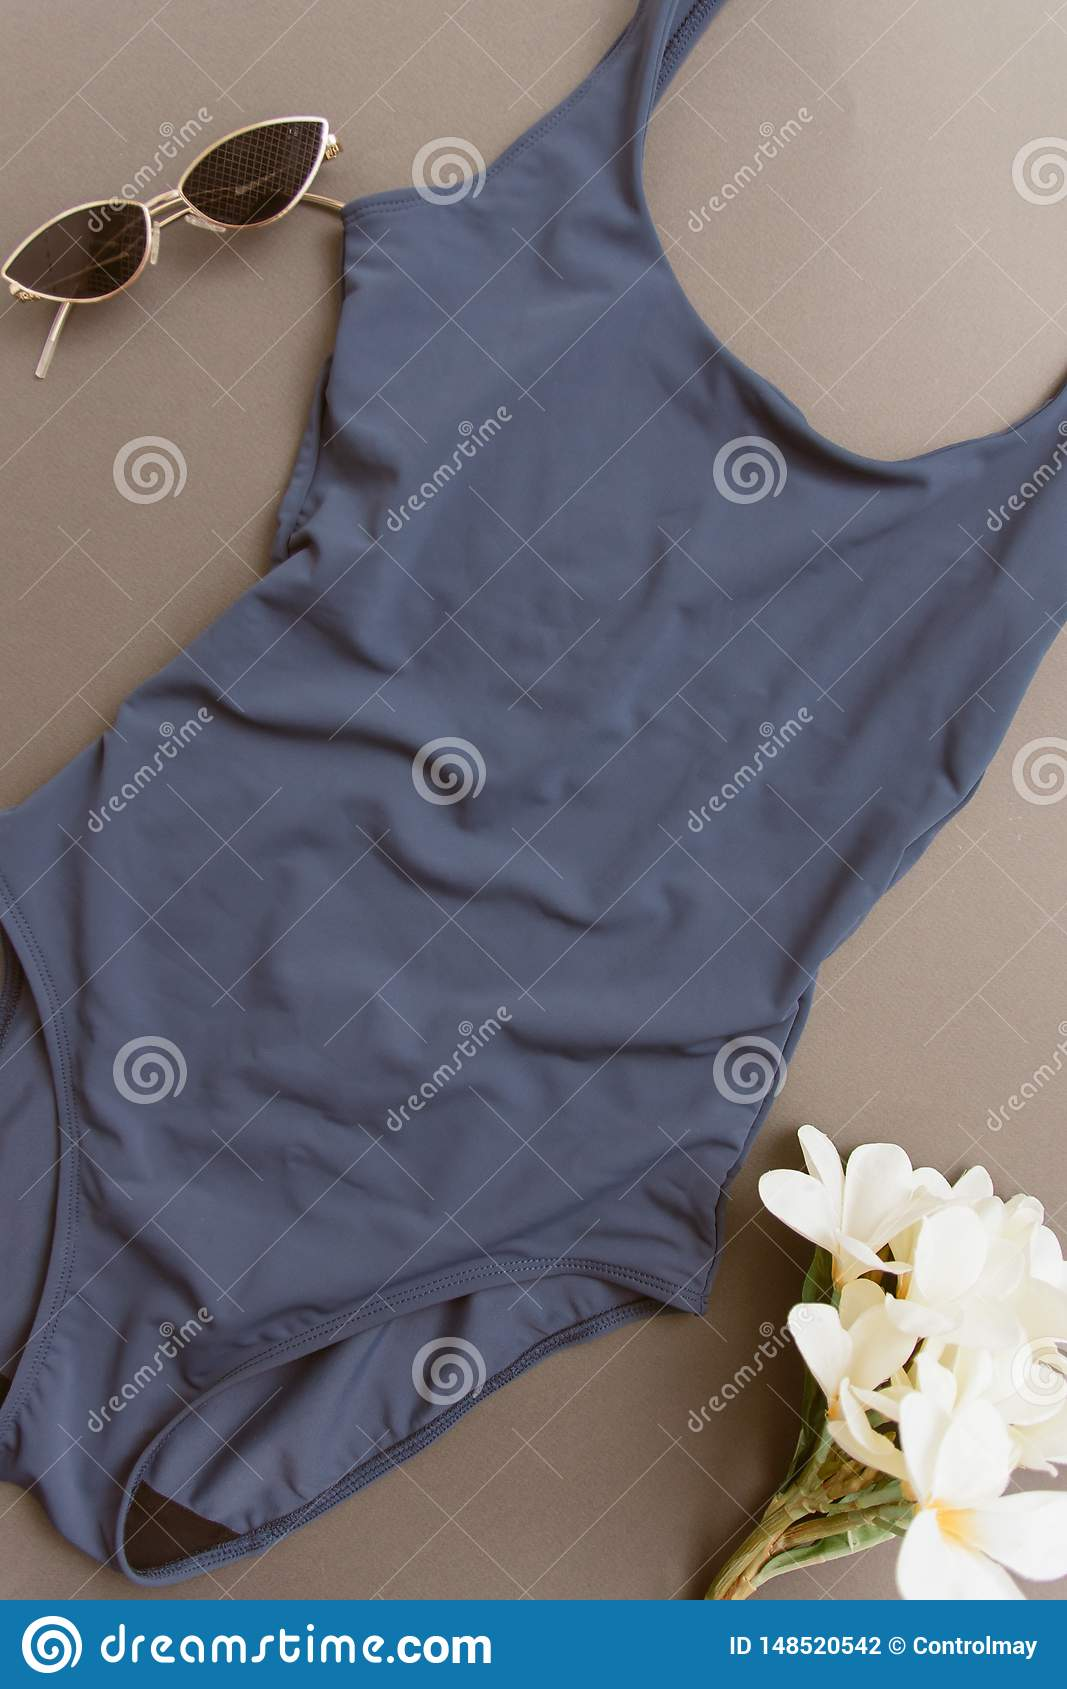 Blue swimsuit on a beige background